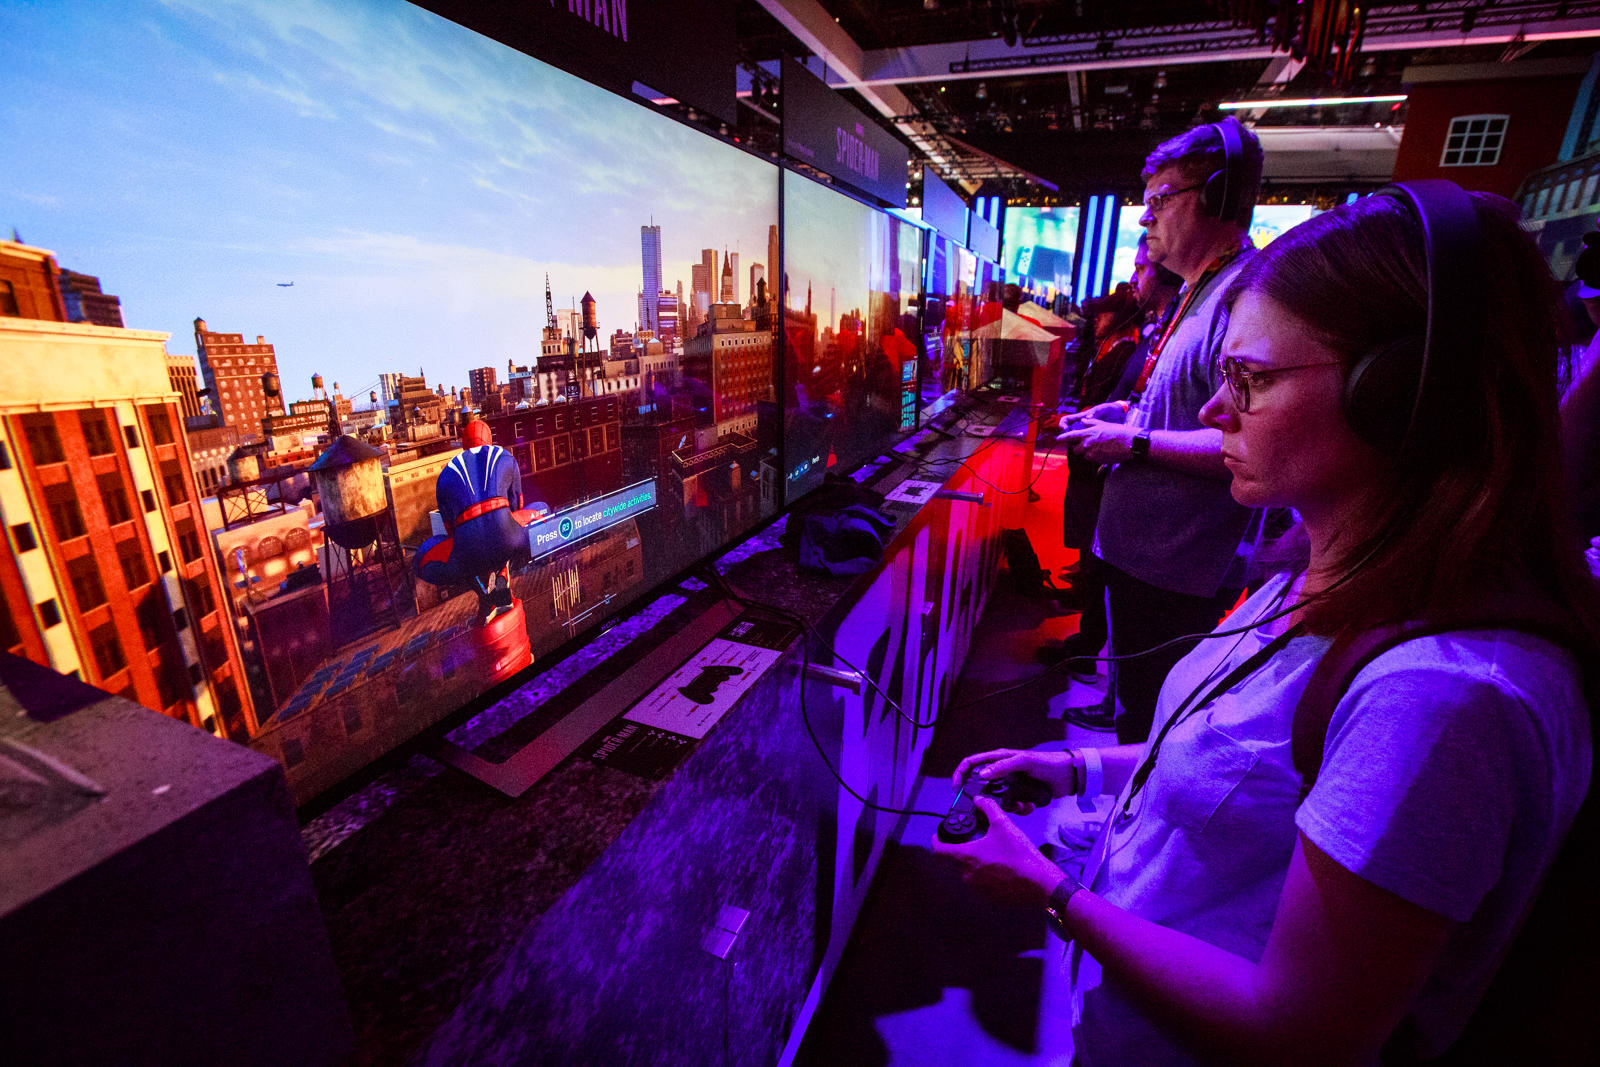 sony-e3-booth-2018-6688